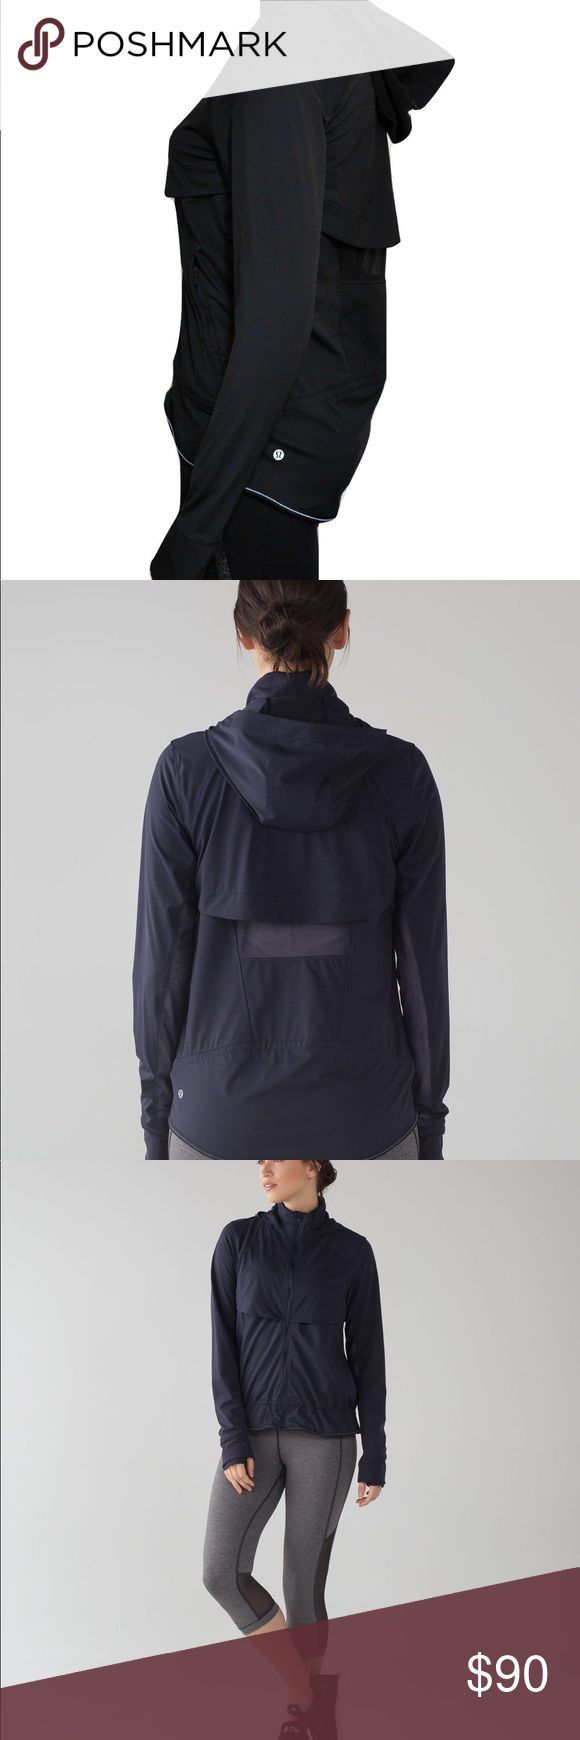 Lululemon Kicking Asphalt Jacket in midnight navy Excellent cond. no perceivable flaws, like new, Go the distance with Lululemon. Womens. Running jacket. Lightweight Spacer fabric is sweat-wicking for a cool and dry feeling. Added Lycra fibre allows for great stretch and shape retention. Strategically placed venting for additional airflow. Reflective detailing keeps you visible in low light. lululemon athletica Jackets & Coats